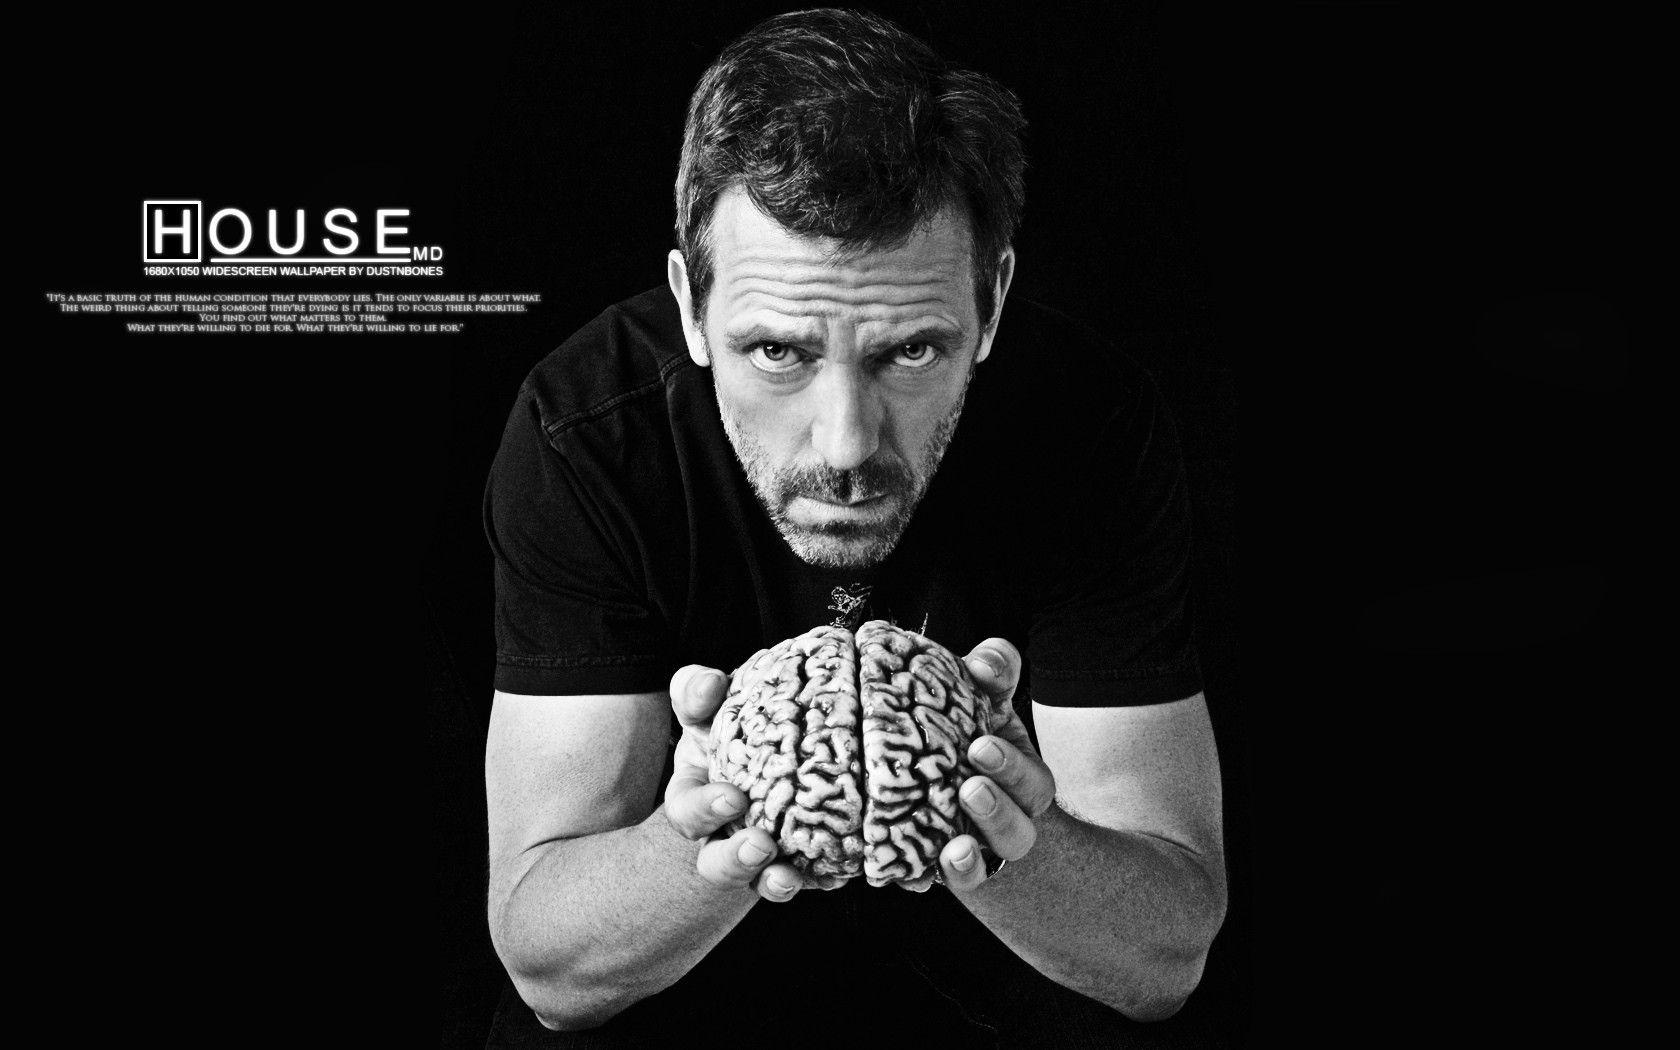 House Widescreen Wallpaper - House M.D. Wallpaper (6490277) - Fanpop